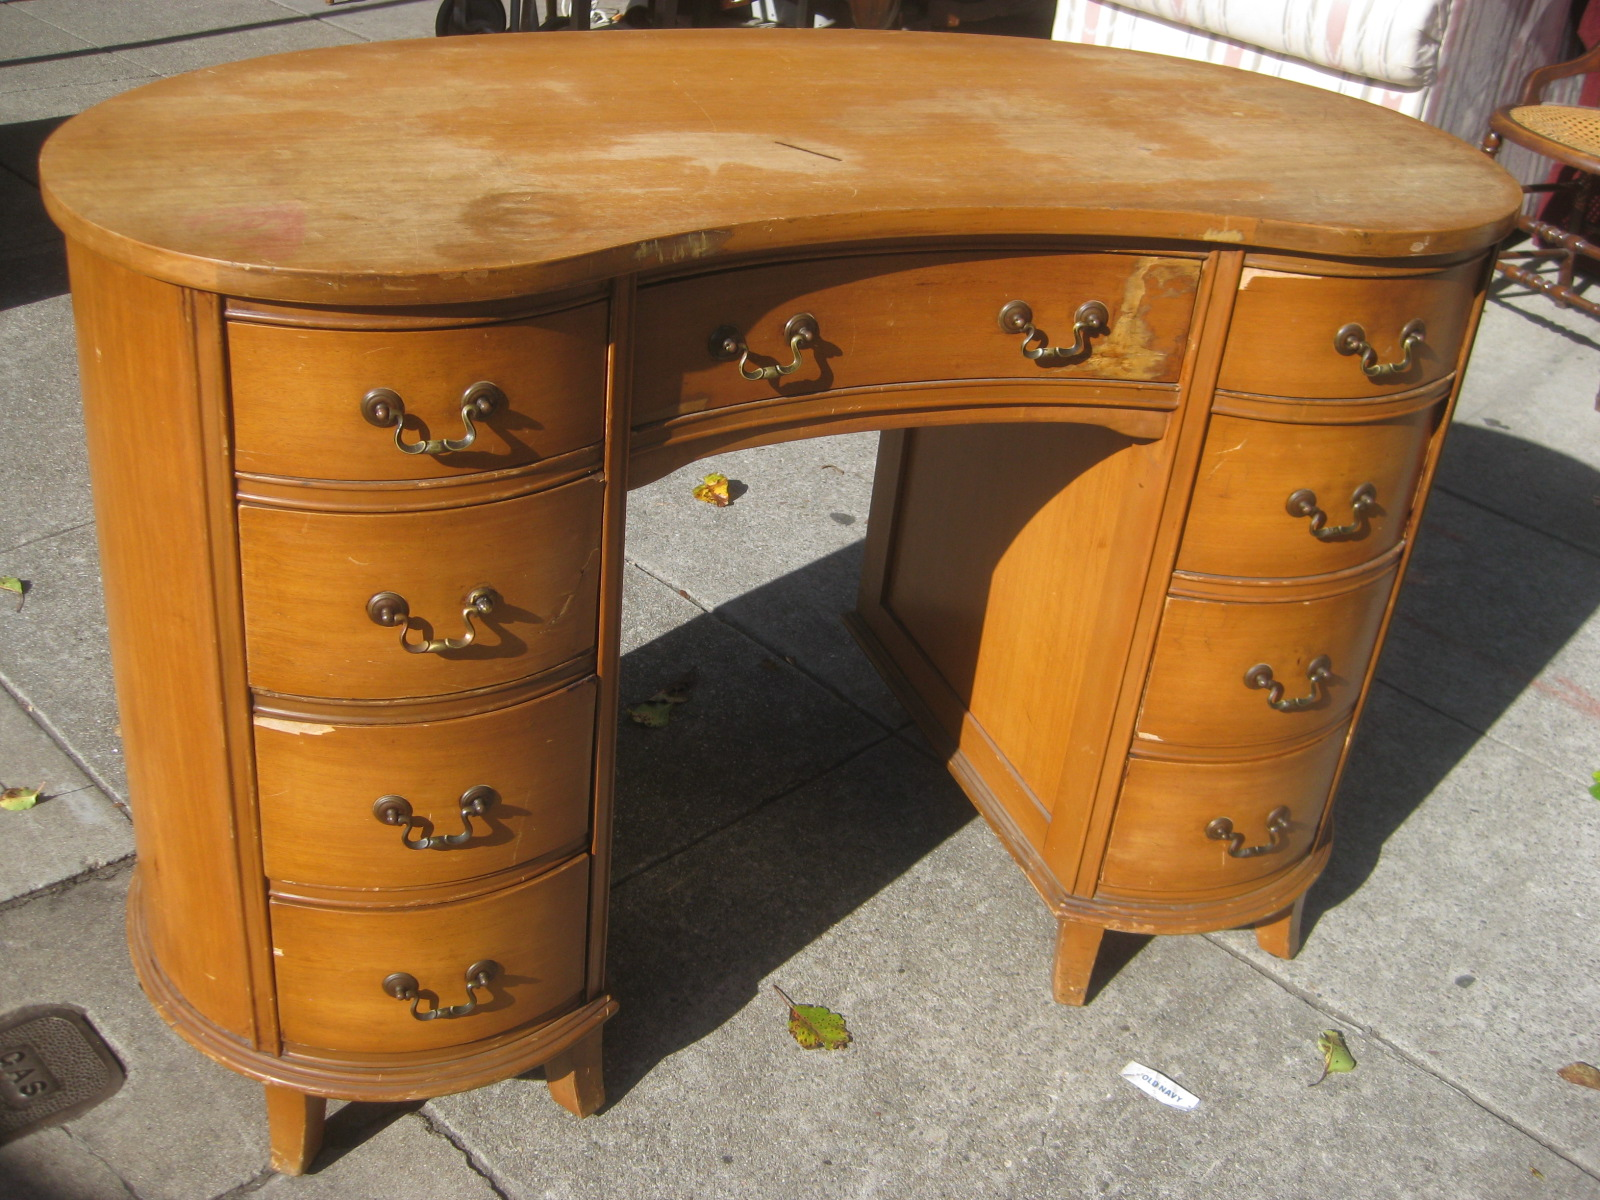 Uhuru furniture collectibles sold kidney bean desk 75 for Kidney desk for sale